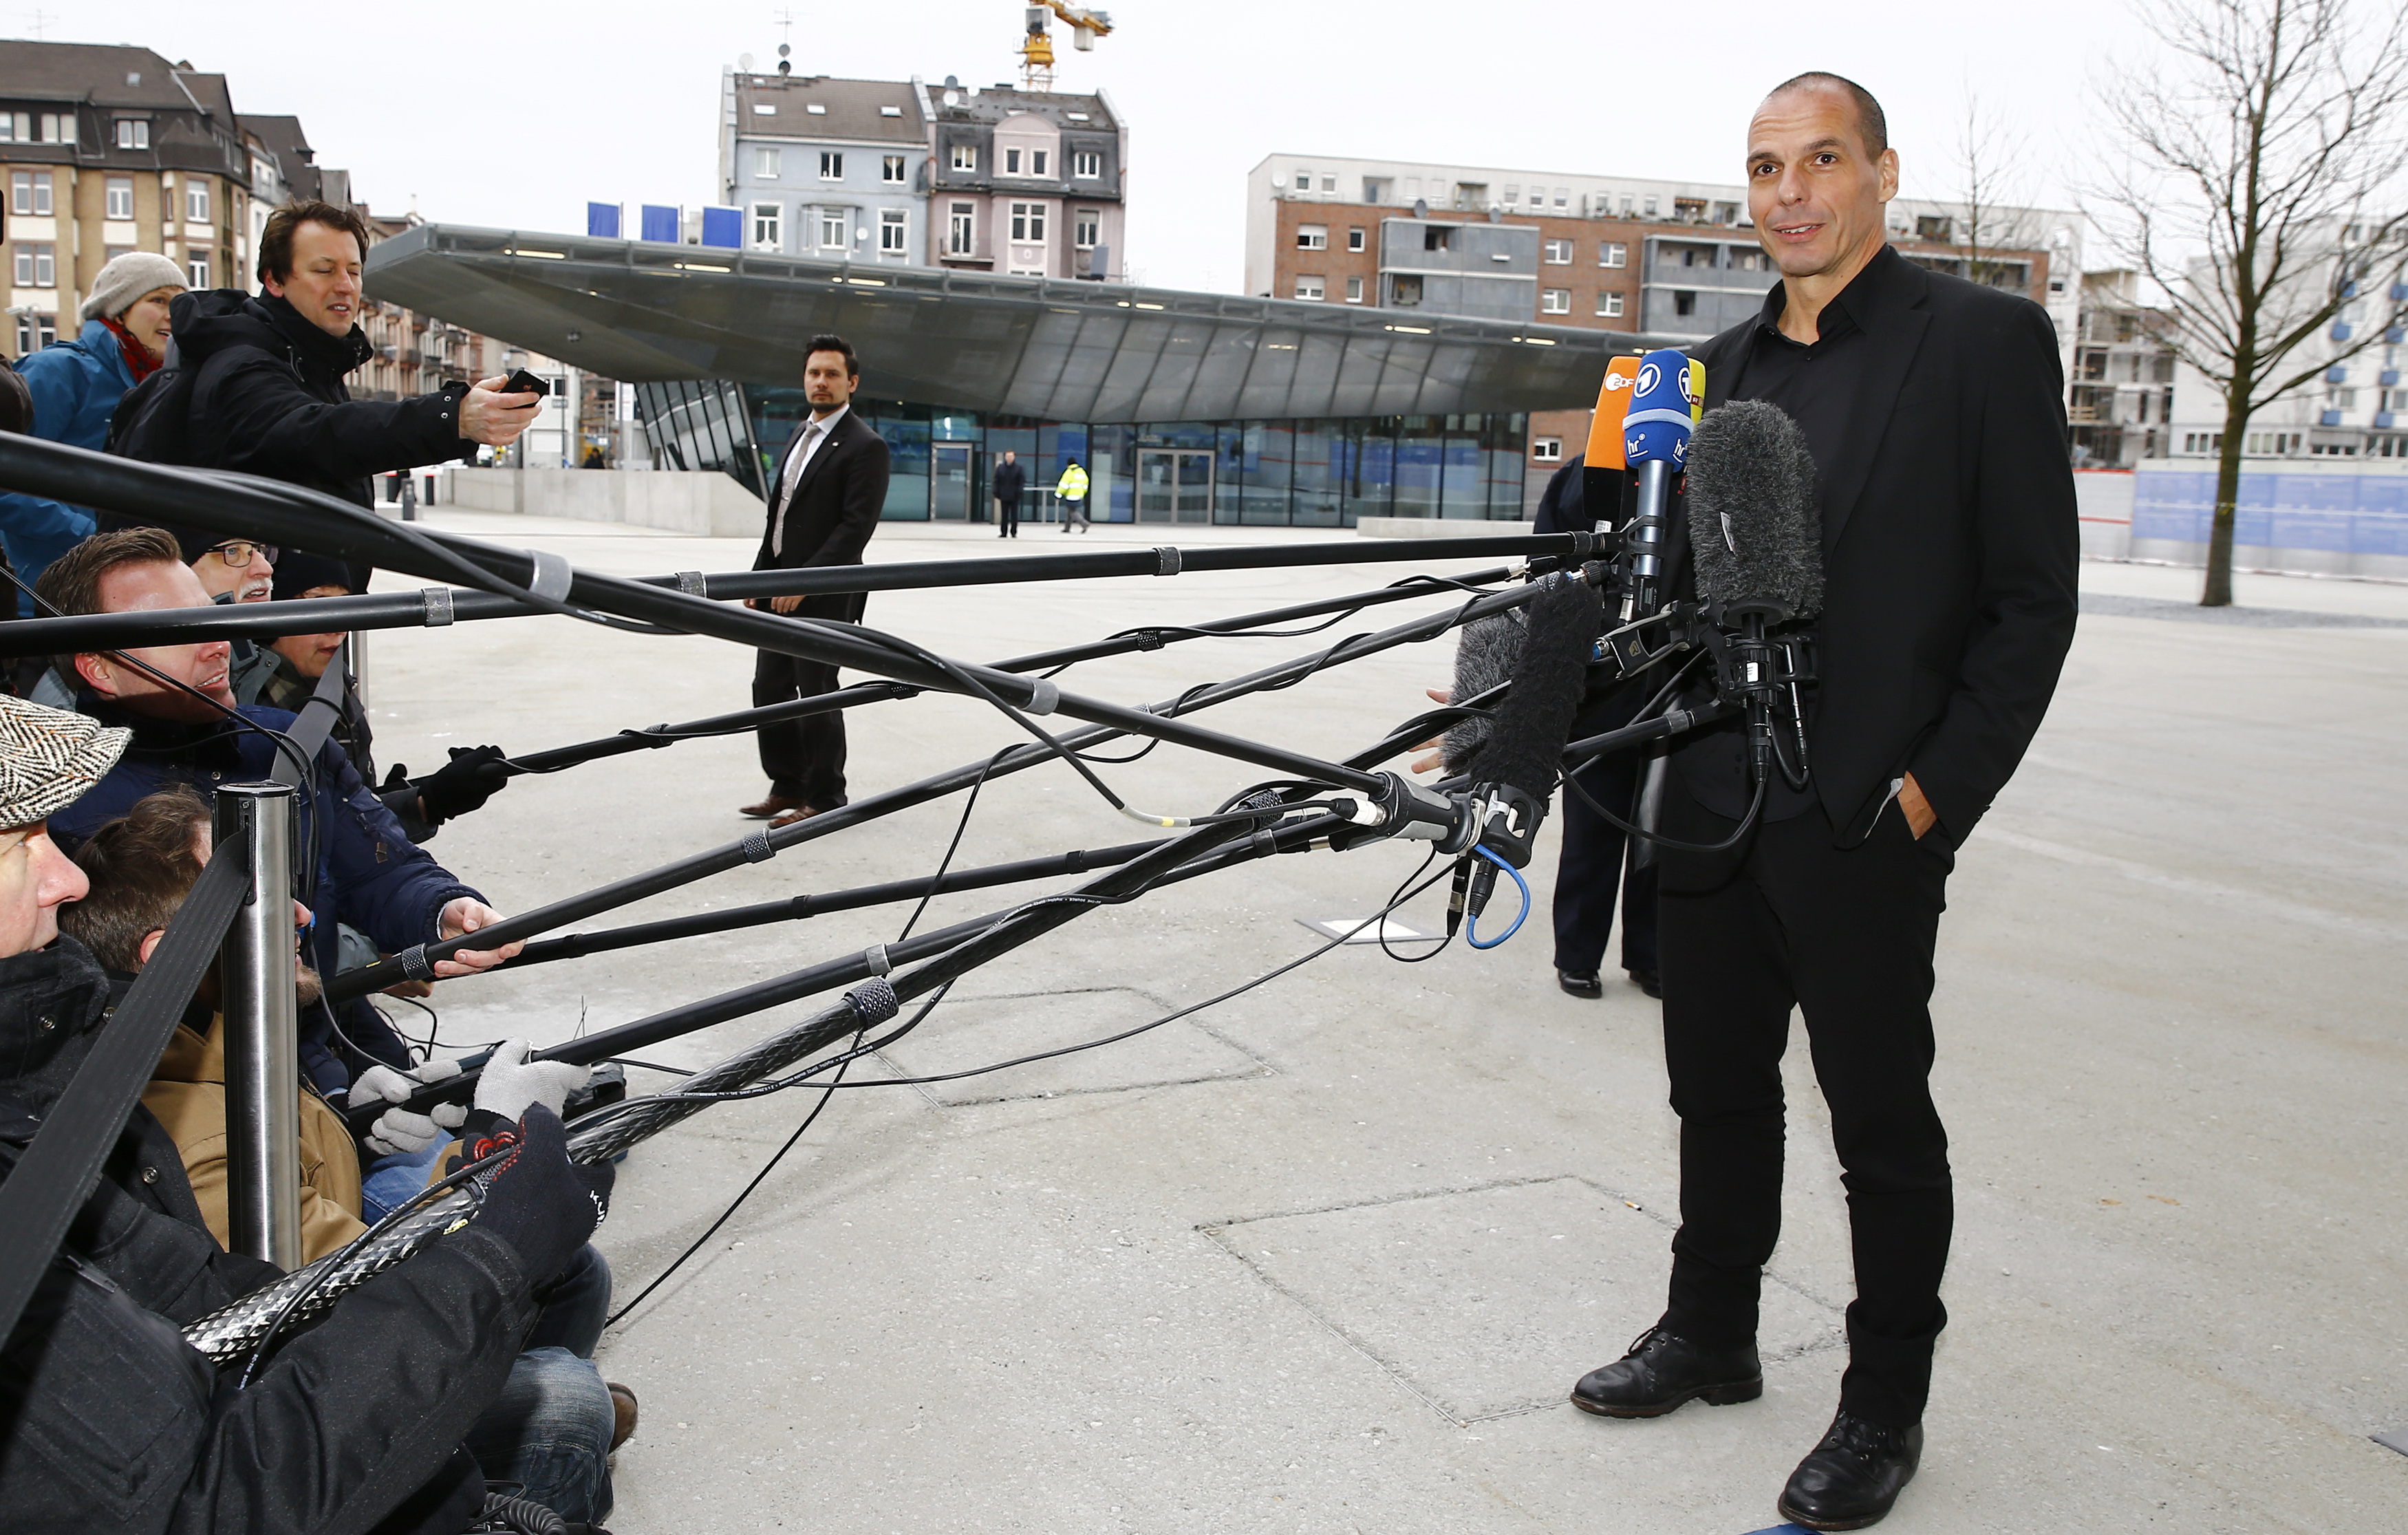 Greek Finance Minister Varoufakis speaks to media outside European Central Bank in Frankfurt